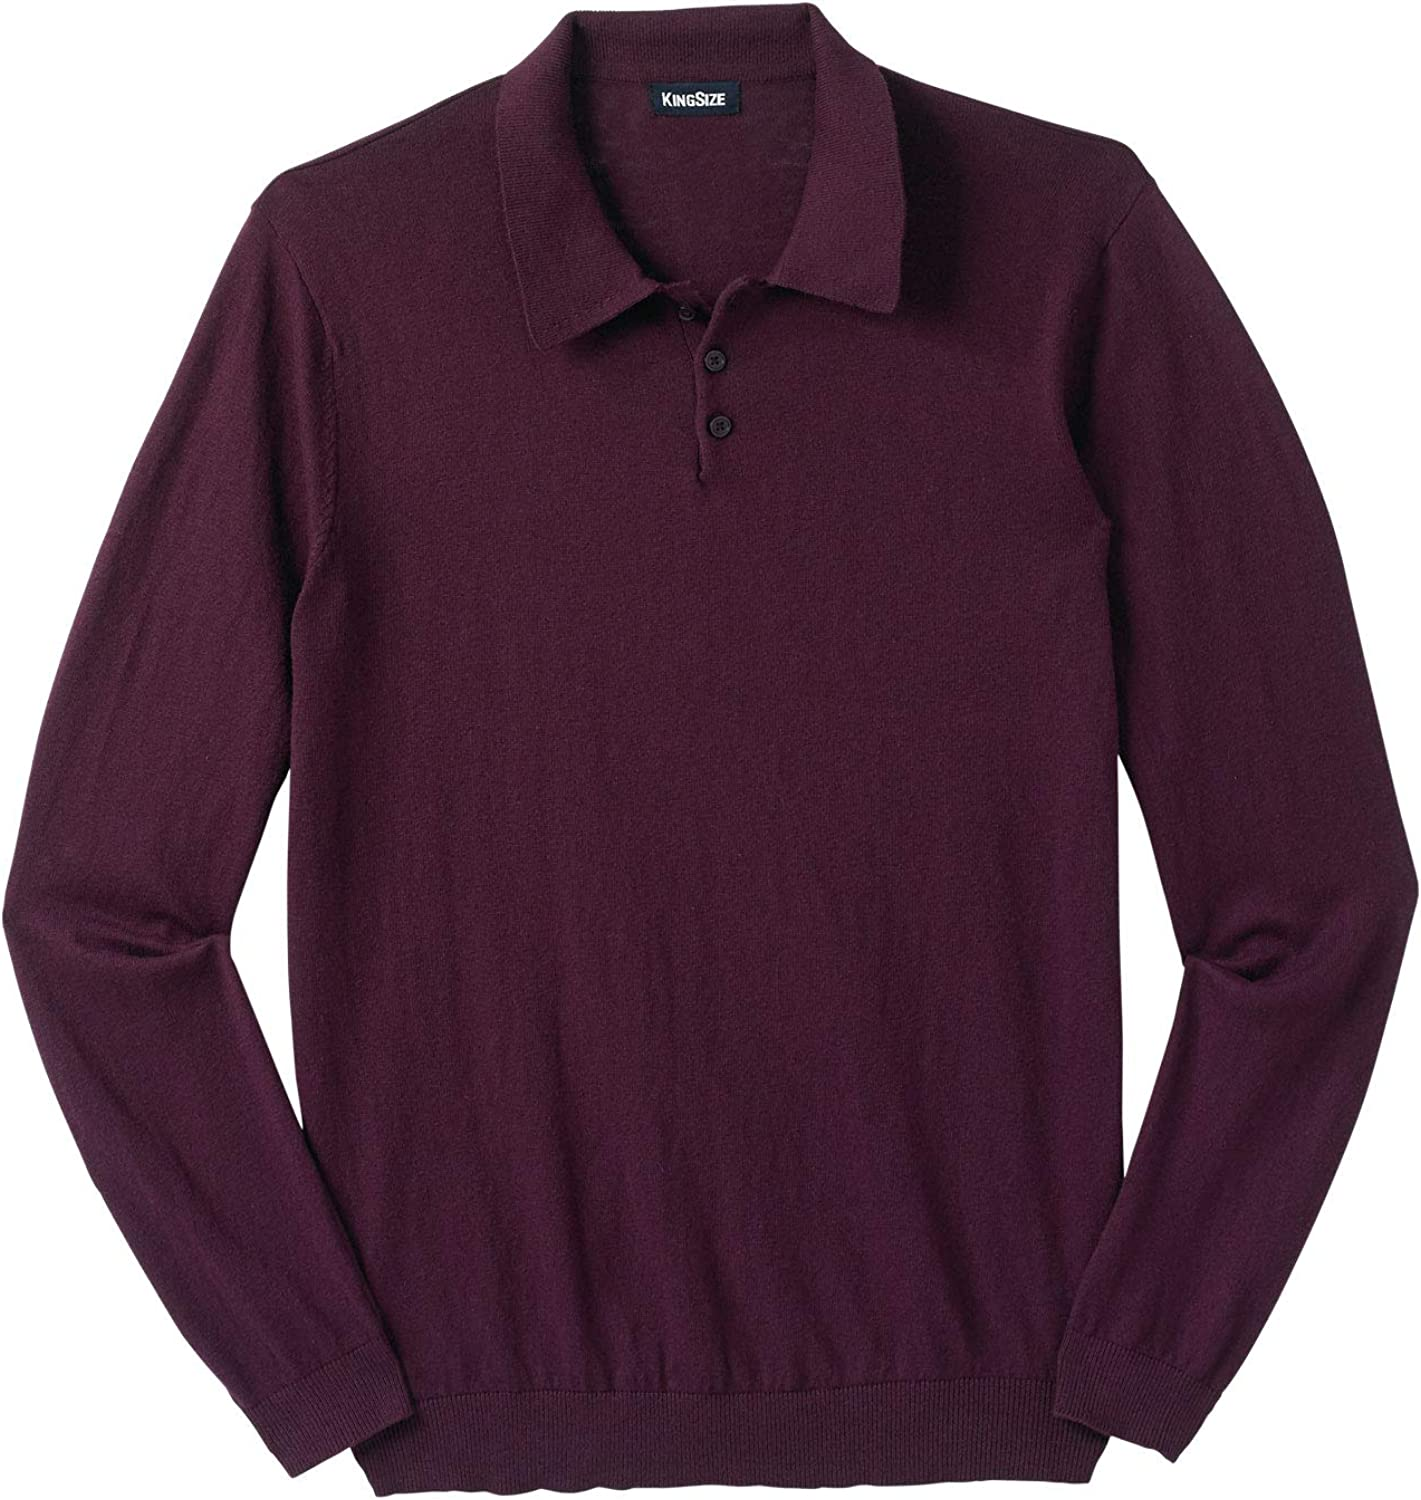 KingSize Men's Big Tall Sweater Lightweight Max 81% OFF Industry No. 1 Polo